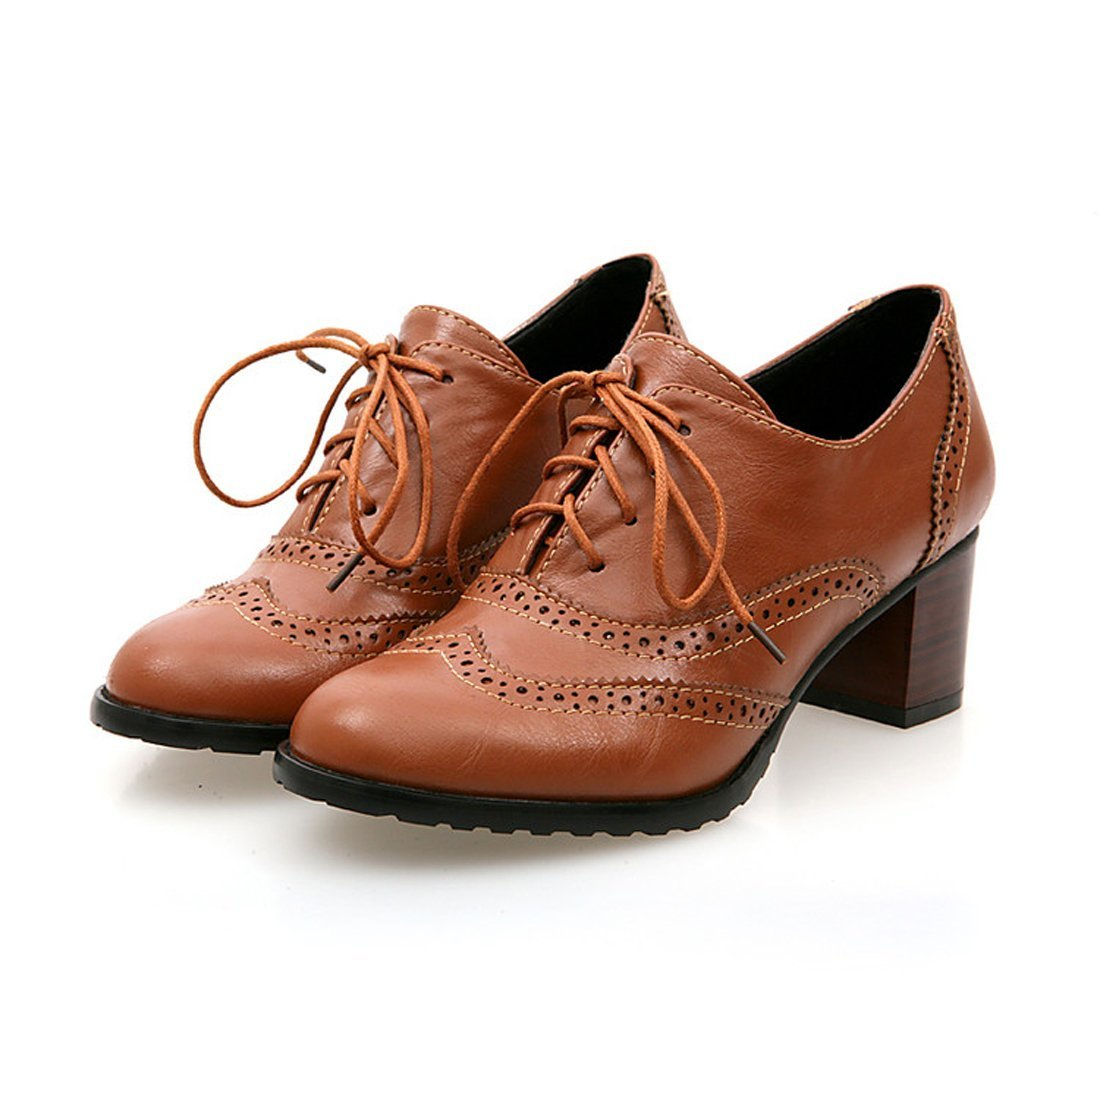 England Brogue Shoe Womens Lace-up Mid Heel Wingtip Oxfords Vintage PU Leather Shoes 0